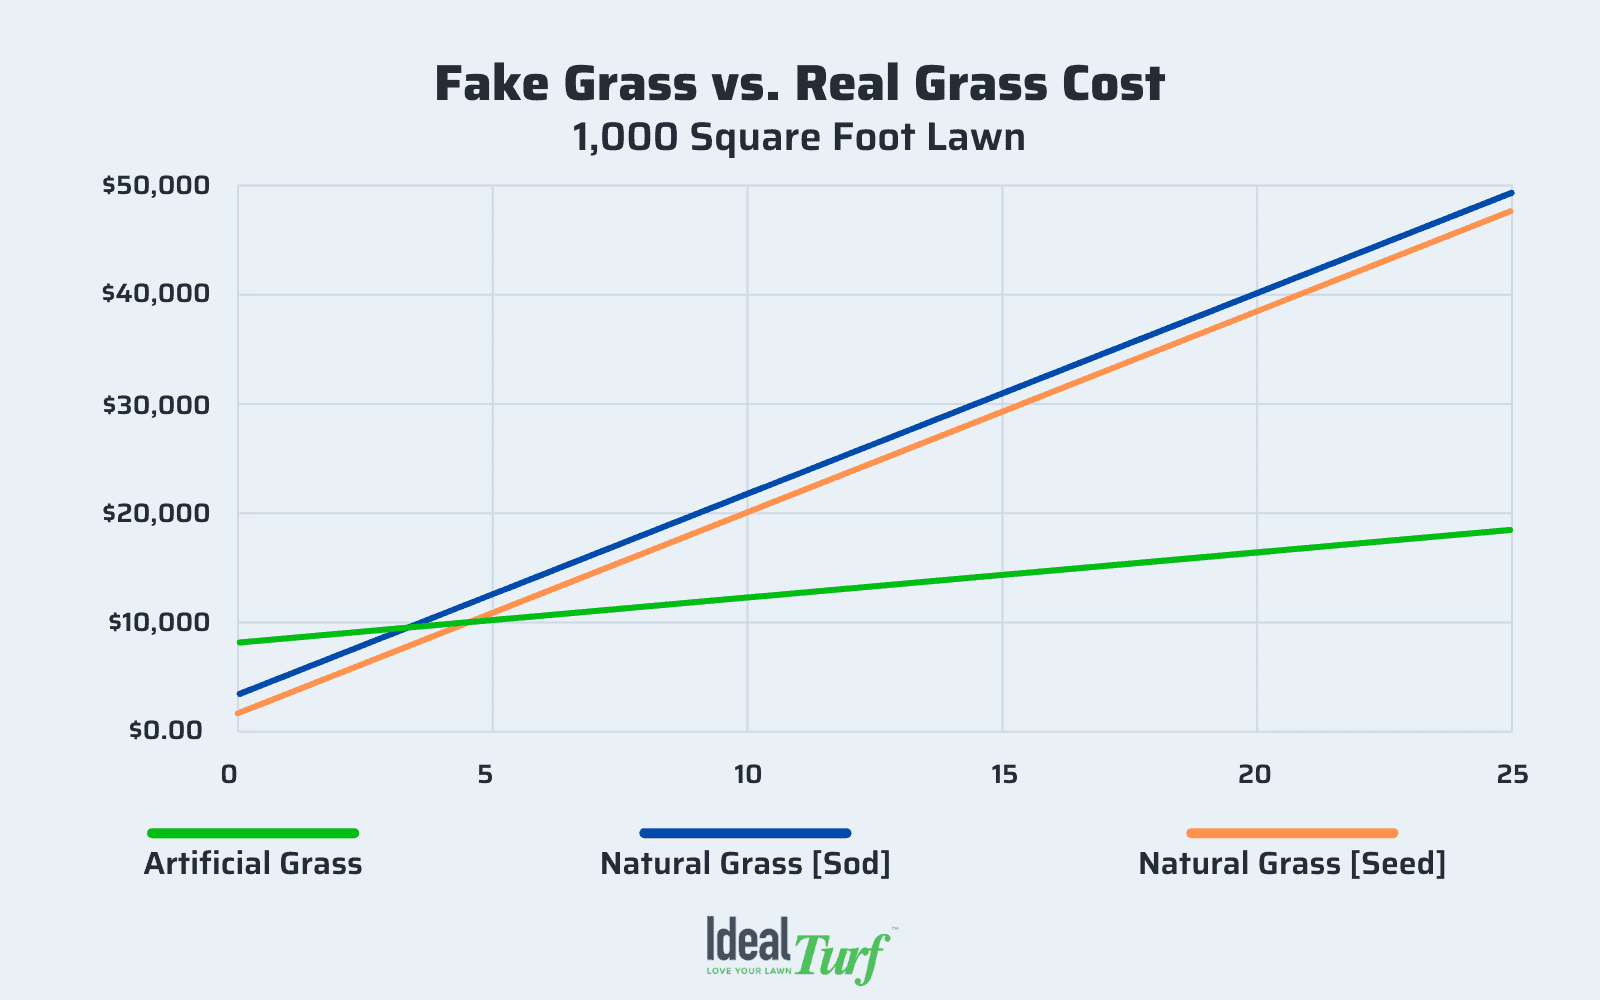 Line graph showing the long-term cost difference between fake grass & real grass